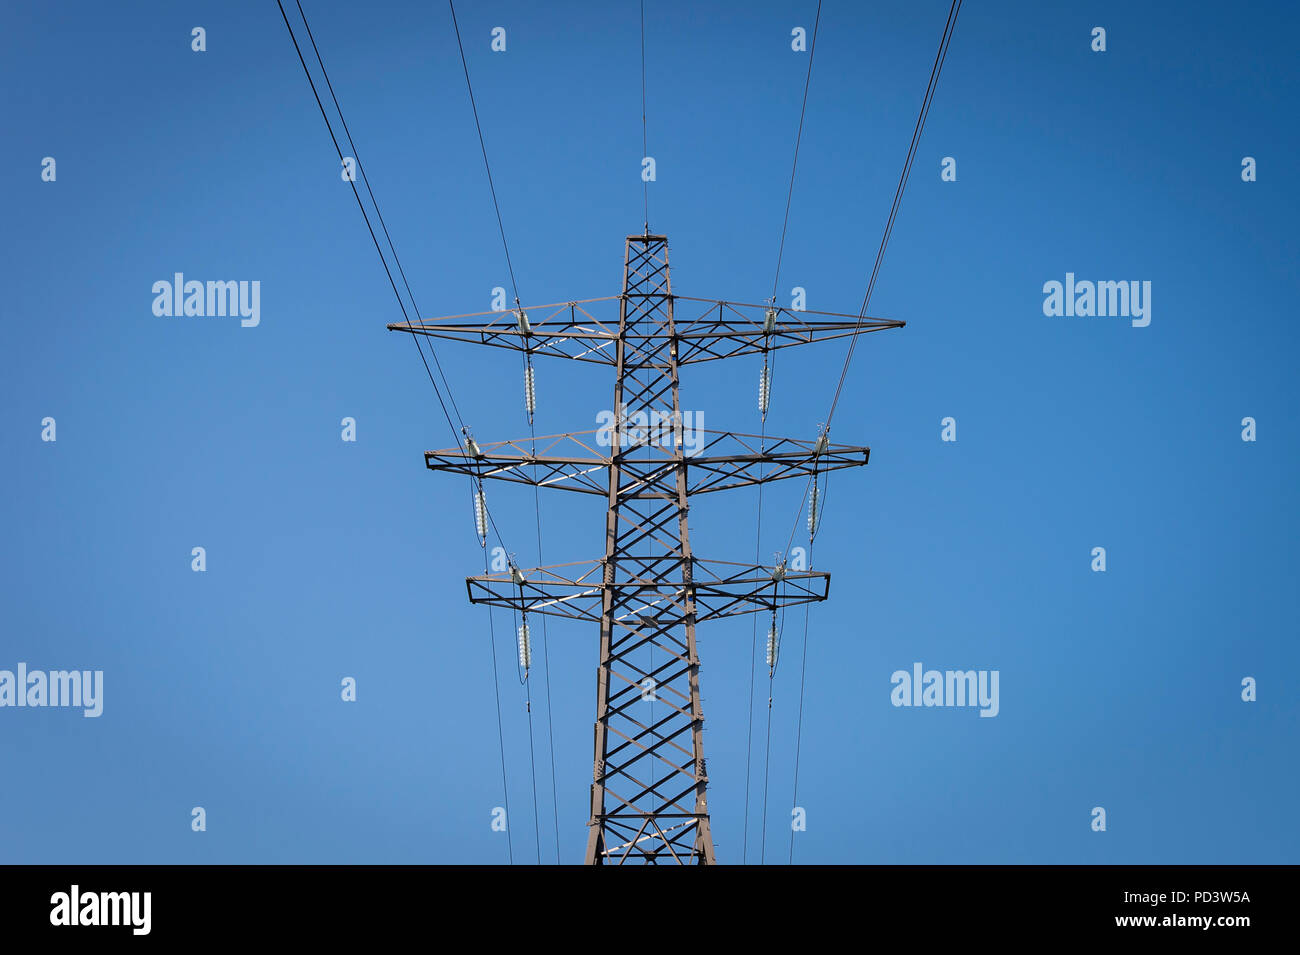 electricity pylon with blue sky, - Stock Image